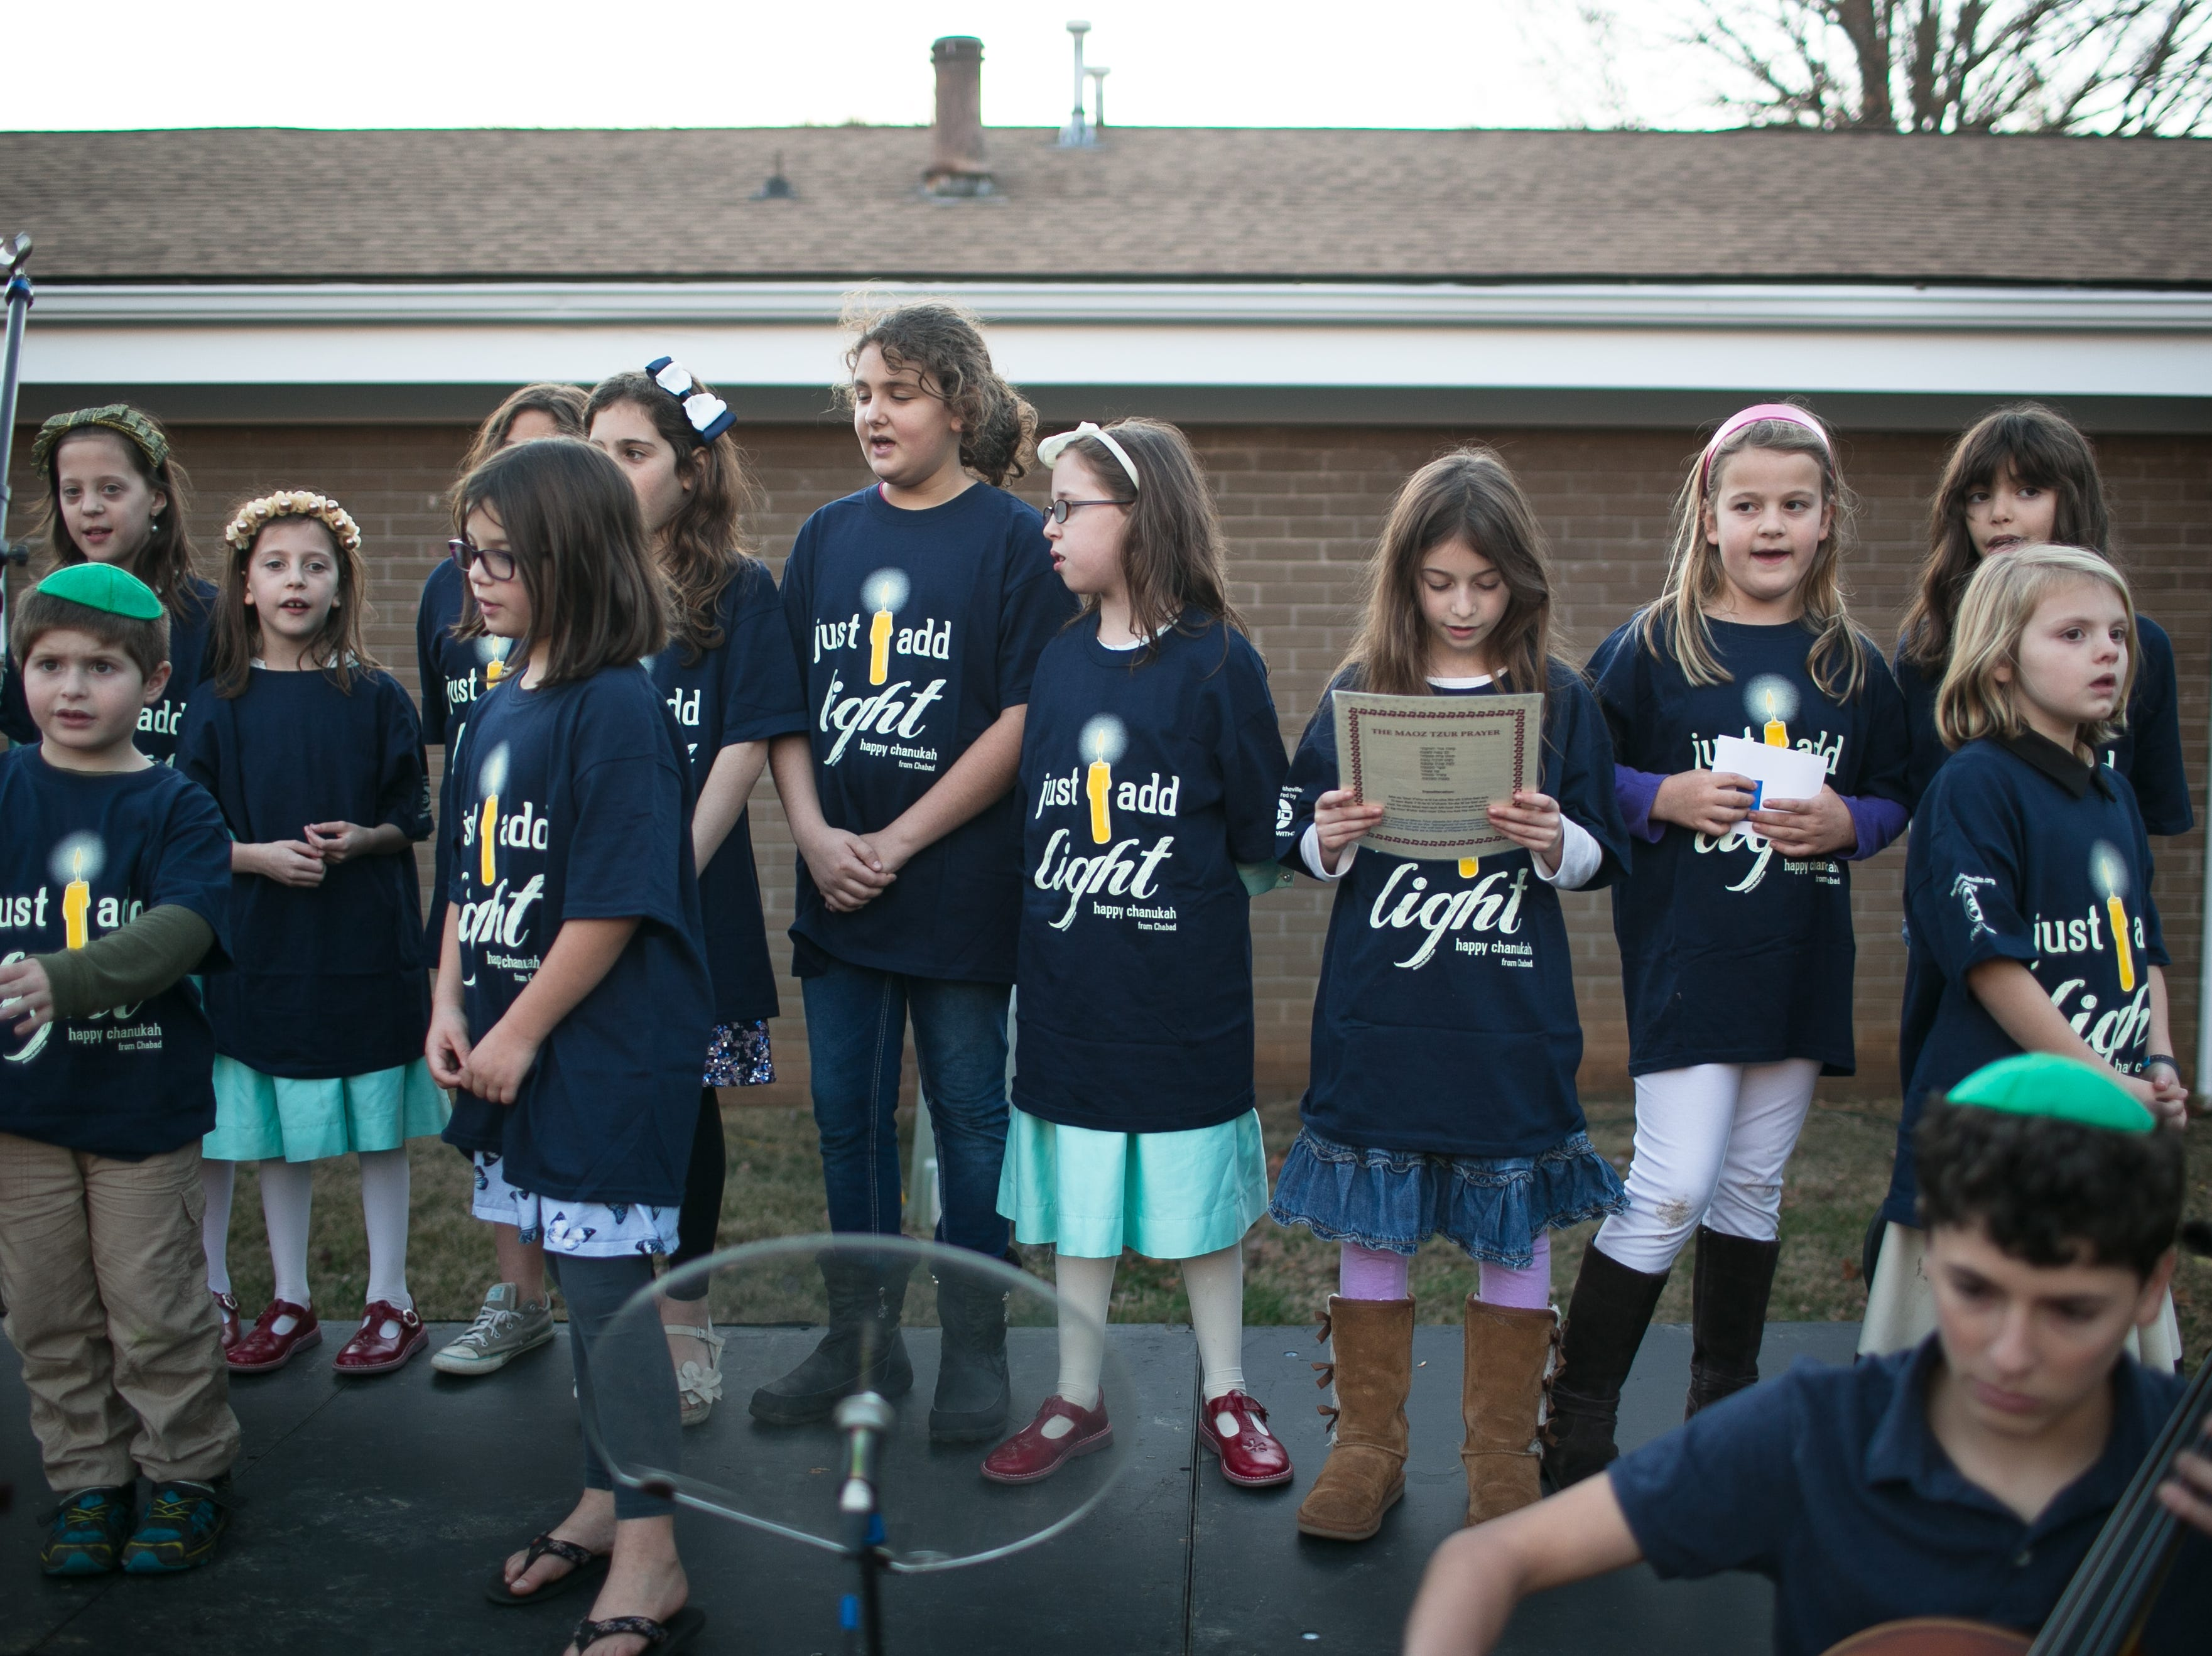 The Chabad Hebrew School of the Arts Sunday School performs during Chanukah Live!, Asheville's community Hanukkah celebration. The event was held at the Chabad House on Dec. 2, 2018, in conjunction with the grand opening of their new facility on McDowell Street.